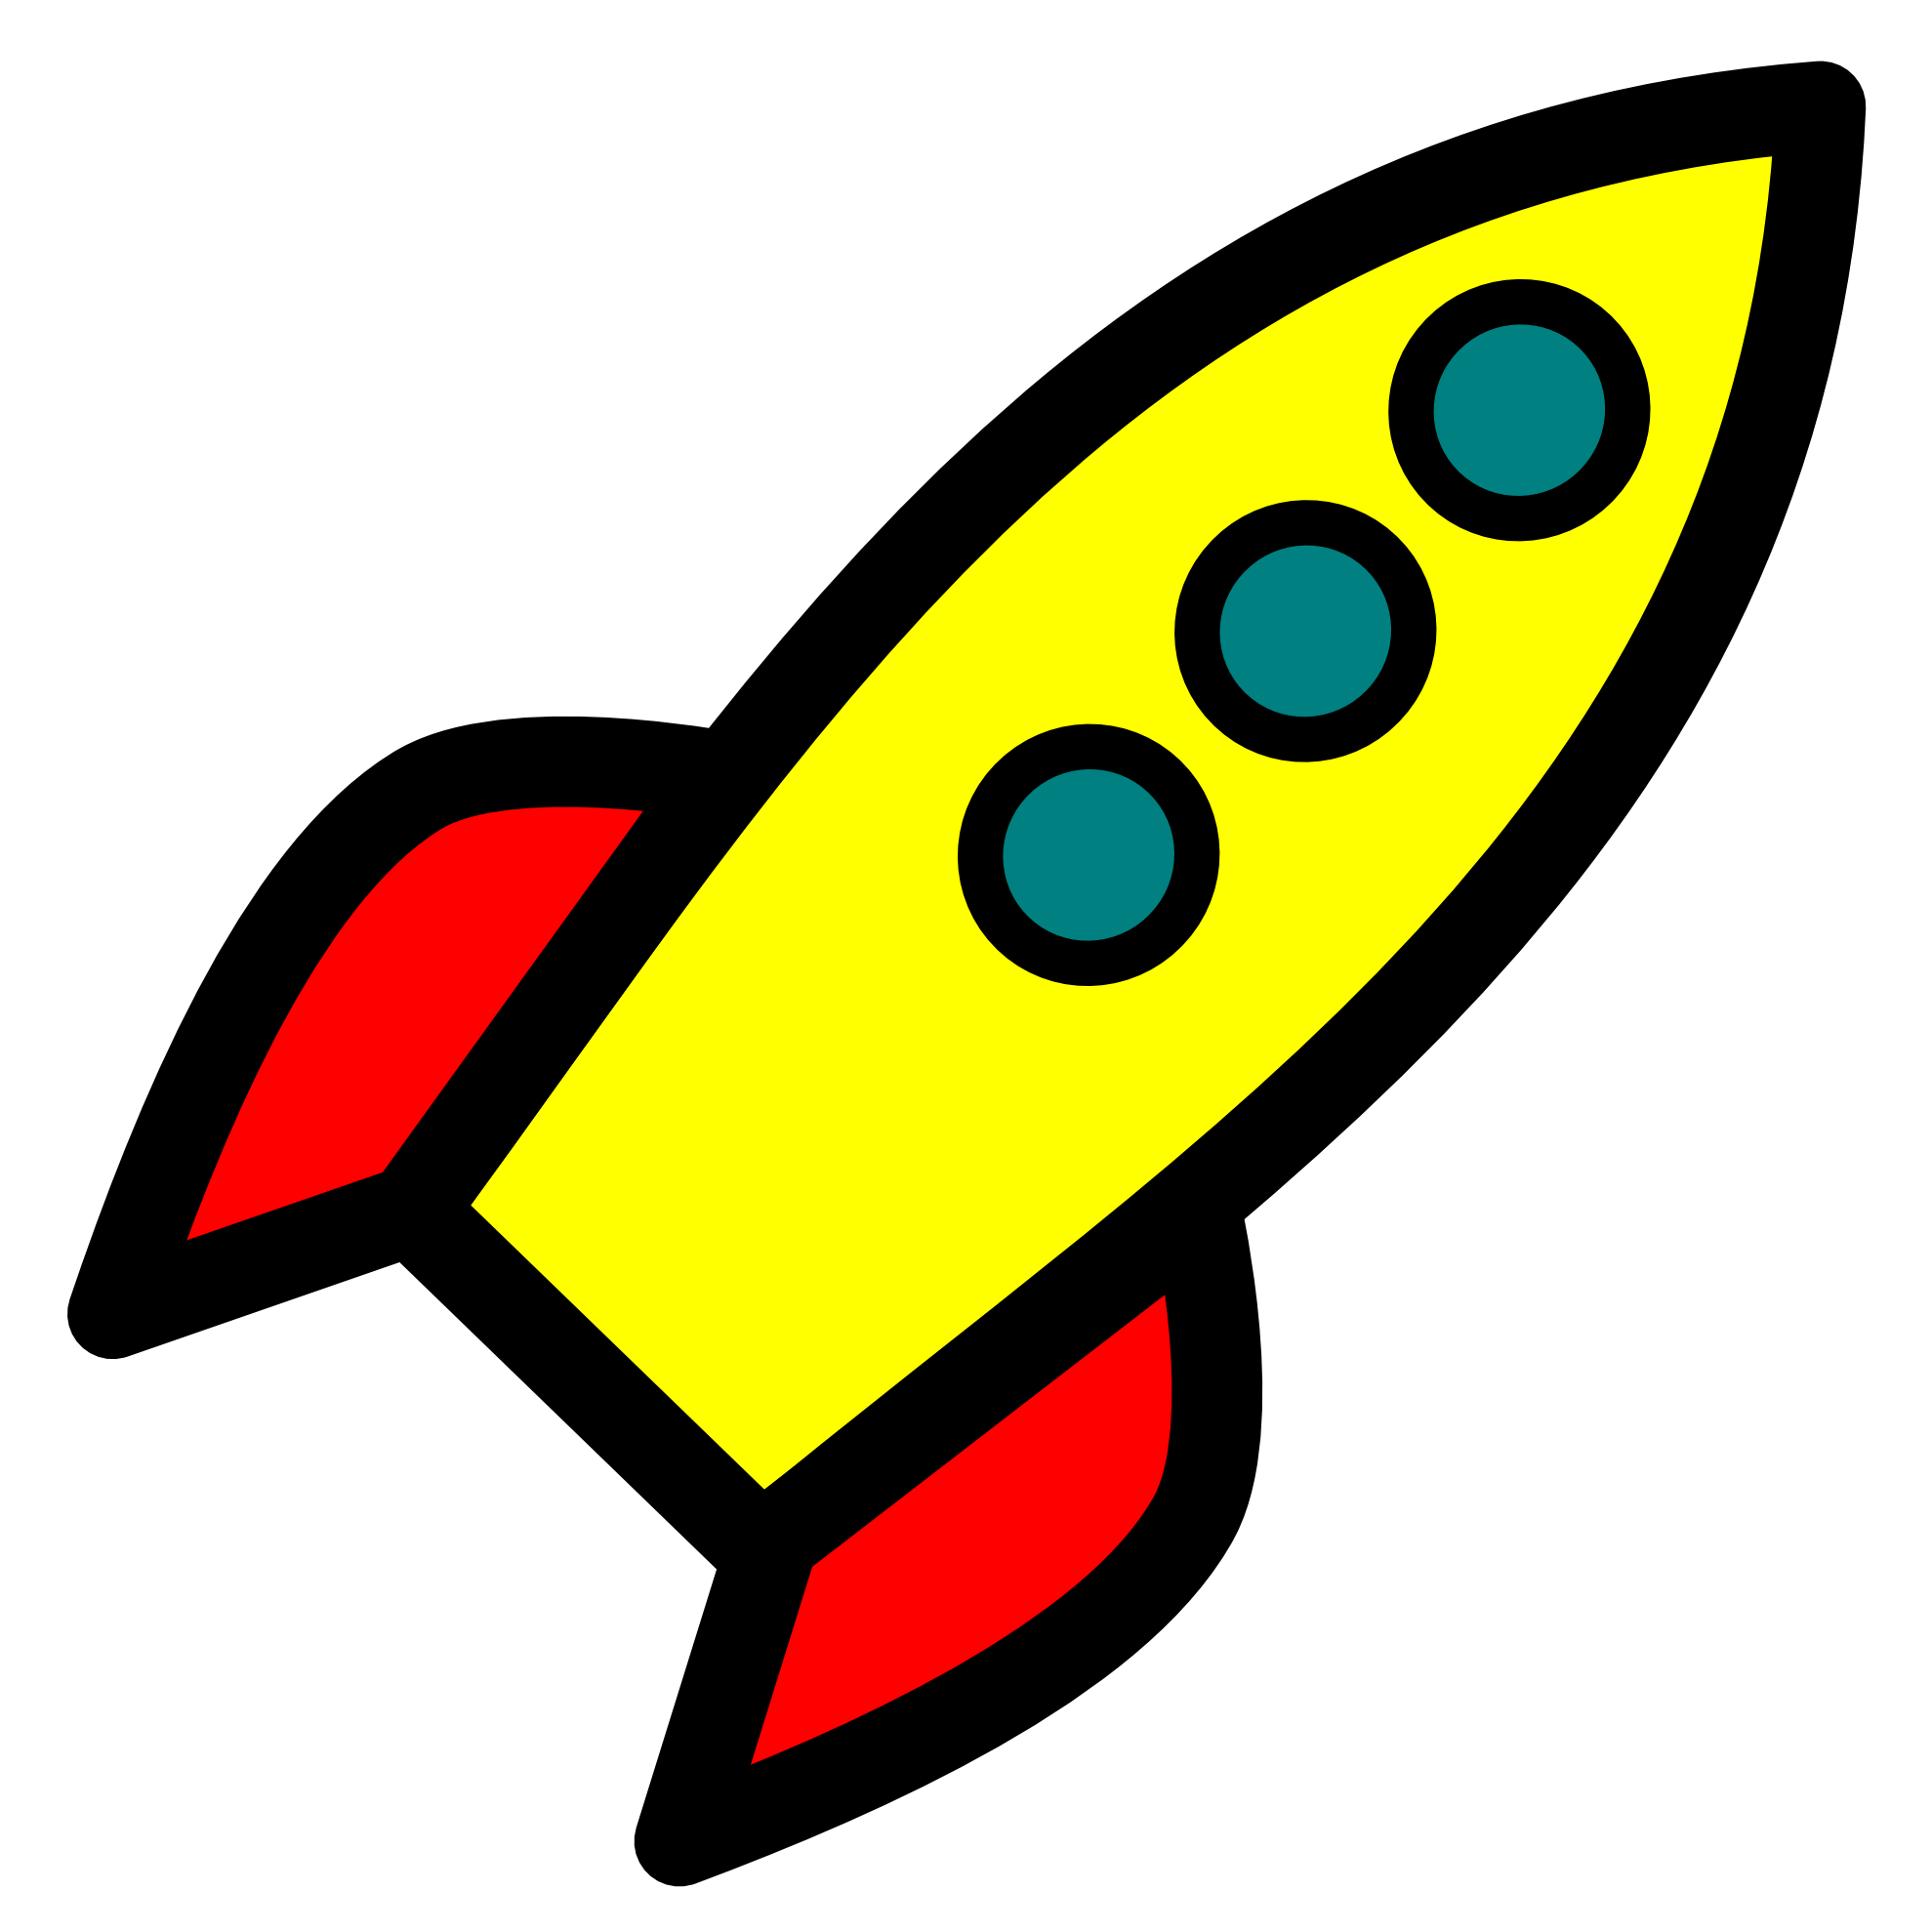 Rocketship pictures of a rocket ship fre-Rocketship pictures of a rocket ship free download clip art-16